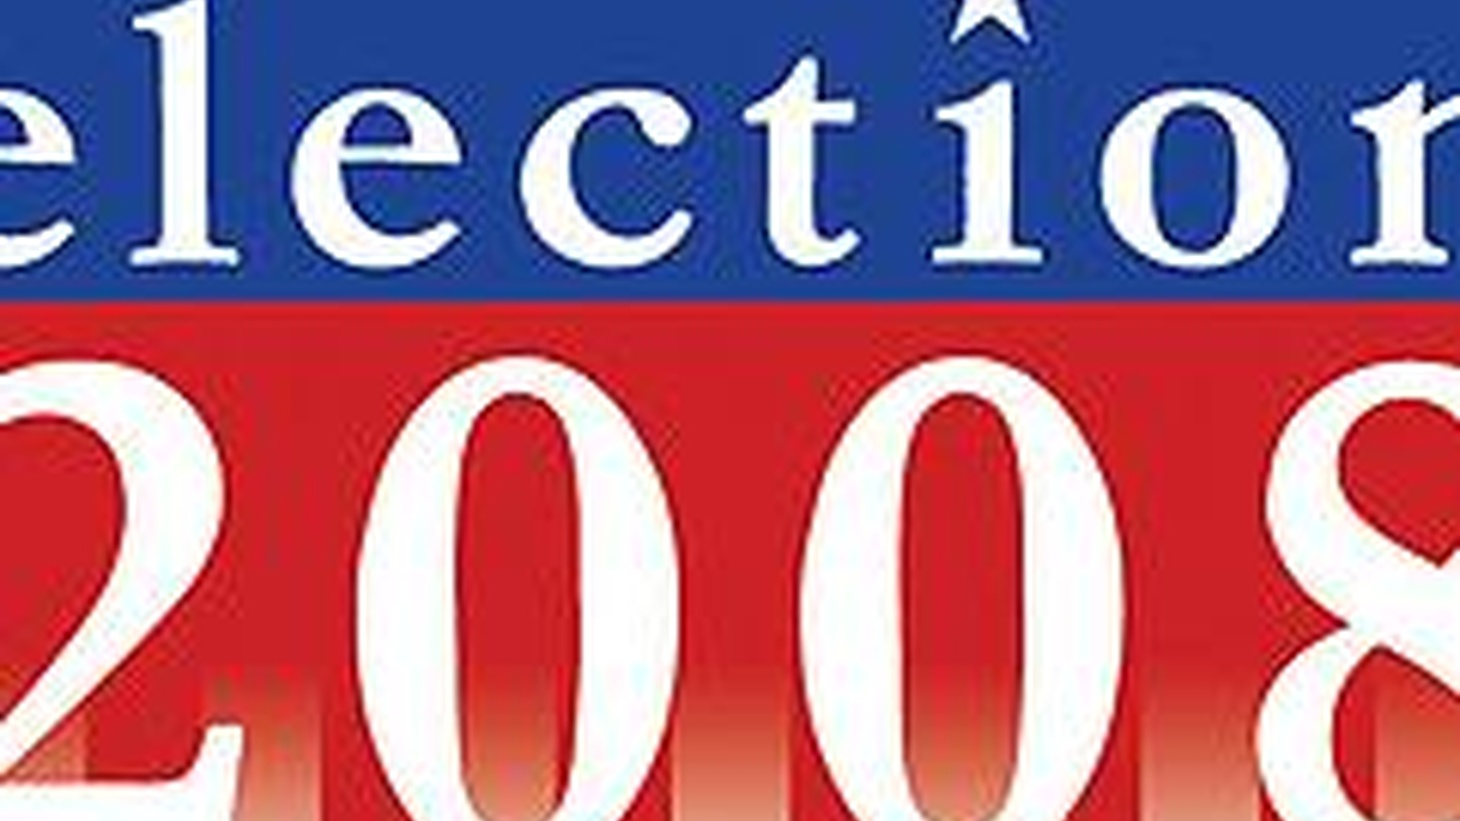 One week after Super Tuesday, voters in Maryland, Virginia and the